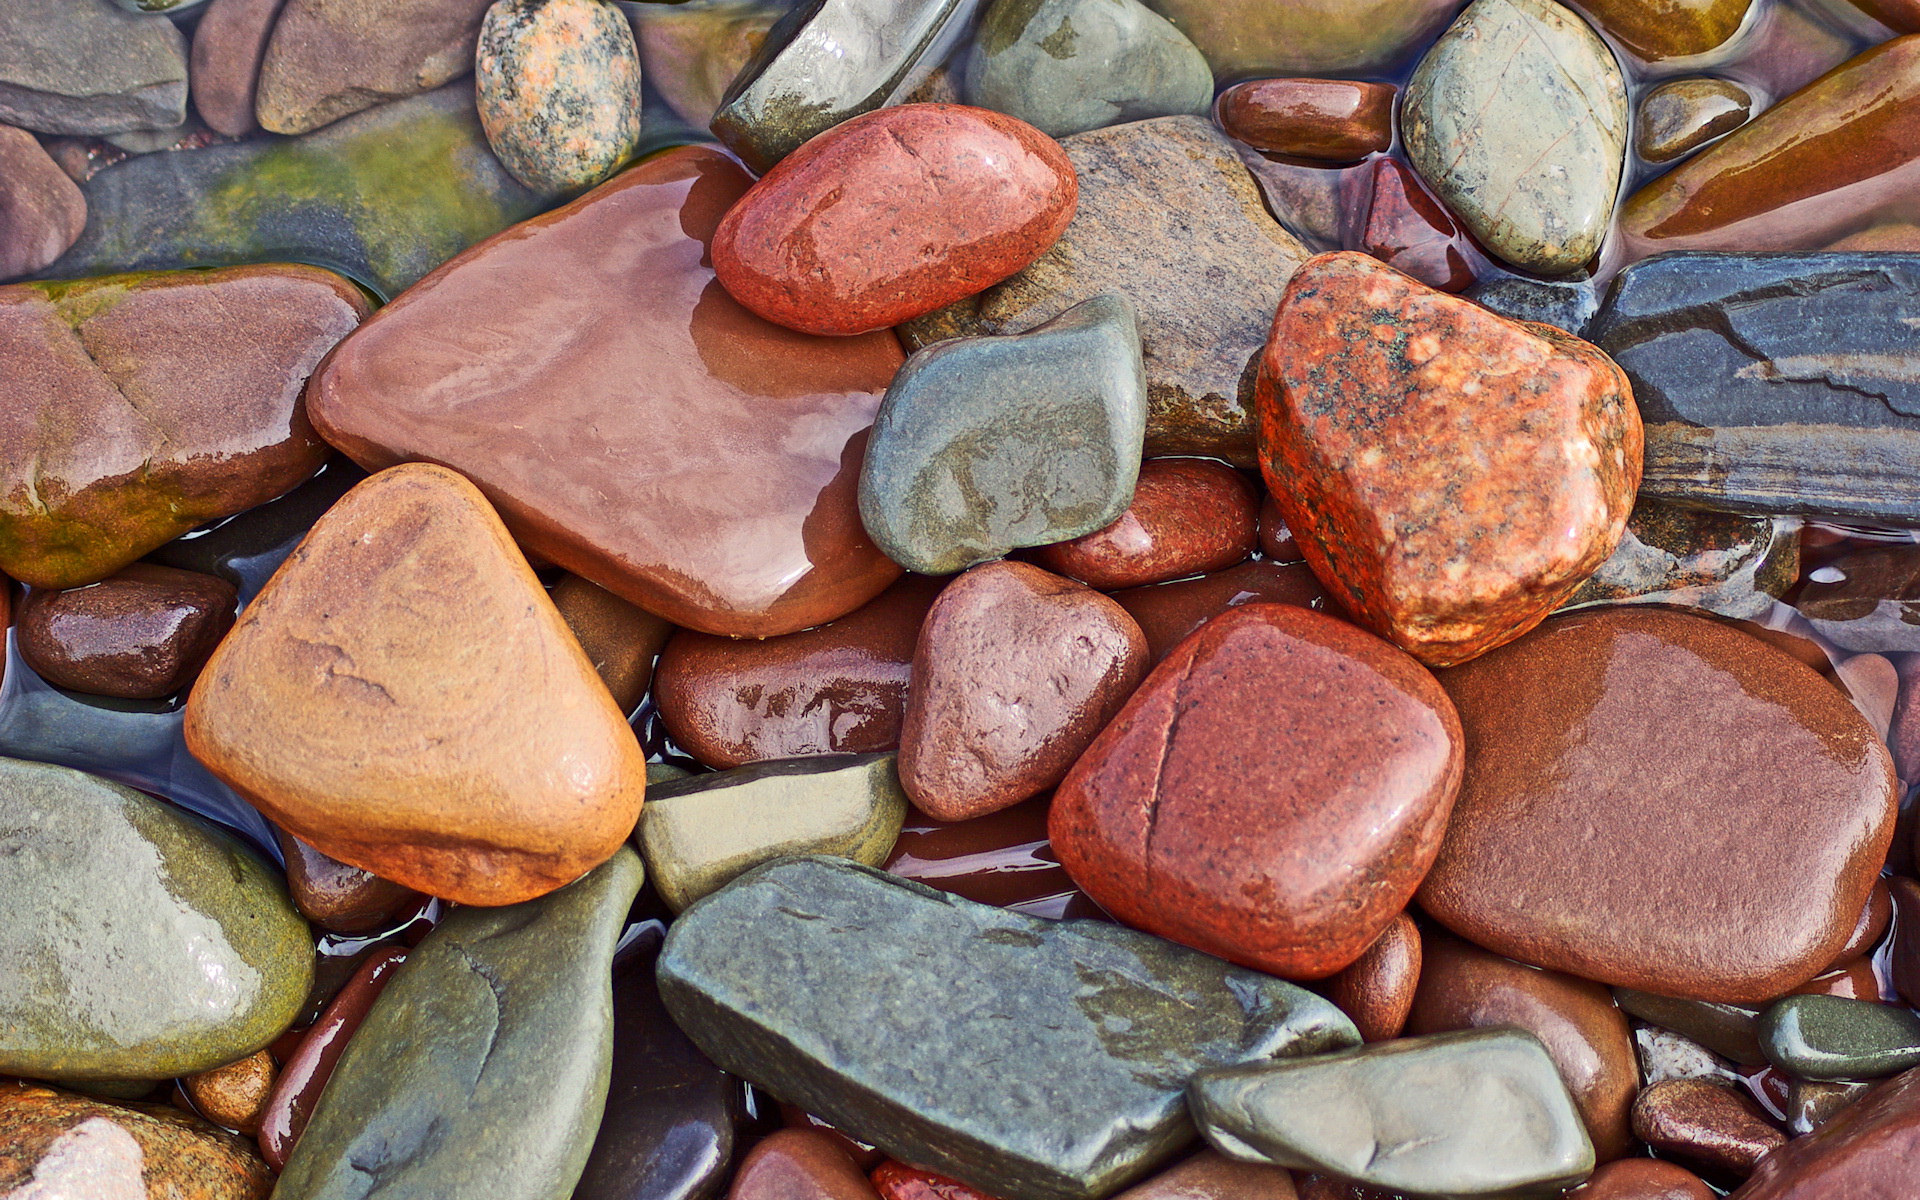 ?image=Diger/Wet_rocks_1920x1200.jpg